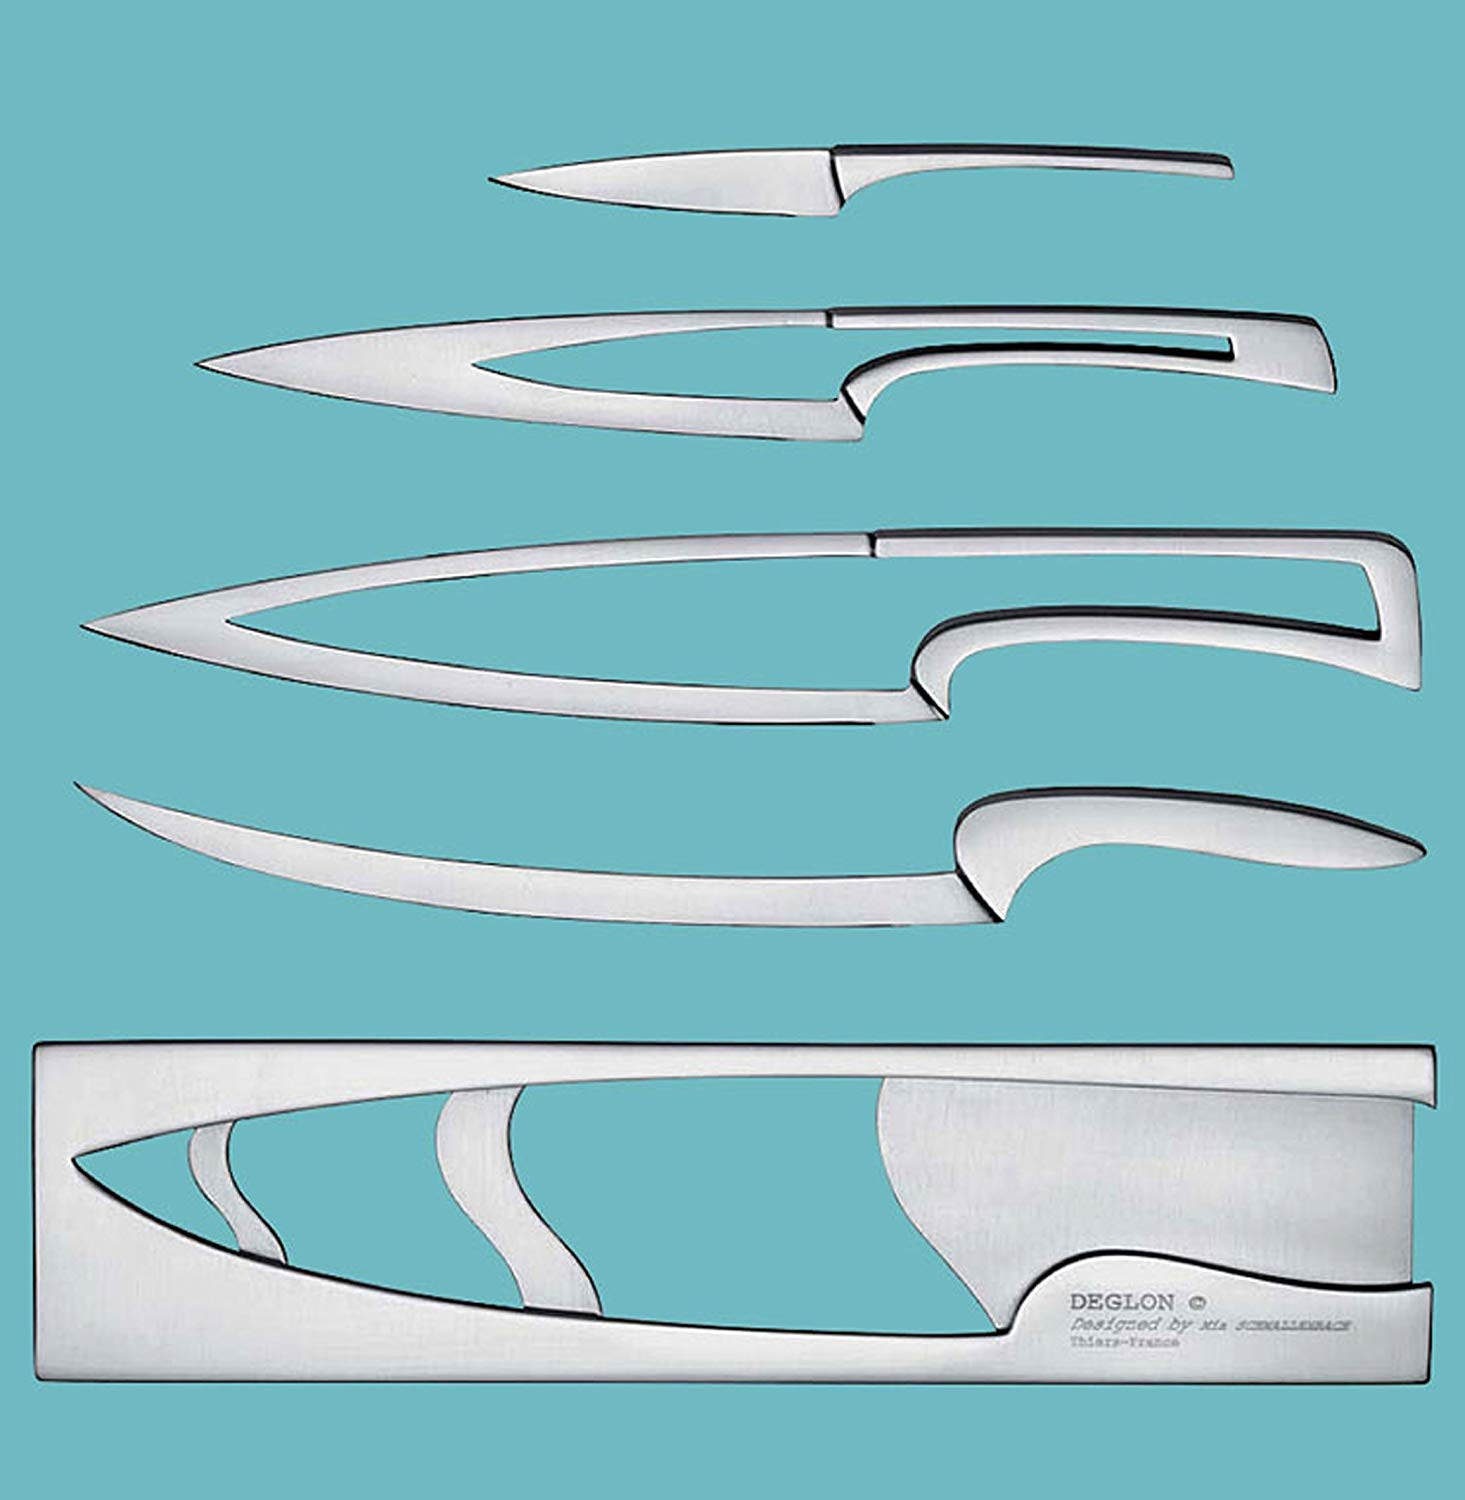 Deglon Meeting Set, Stainless Knife Set